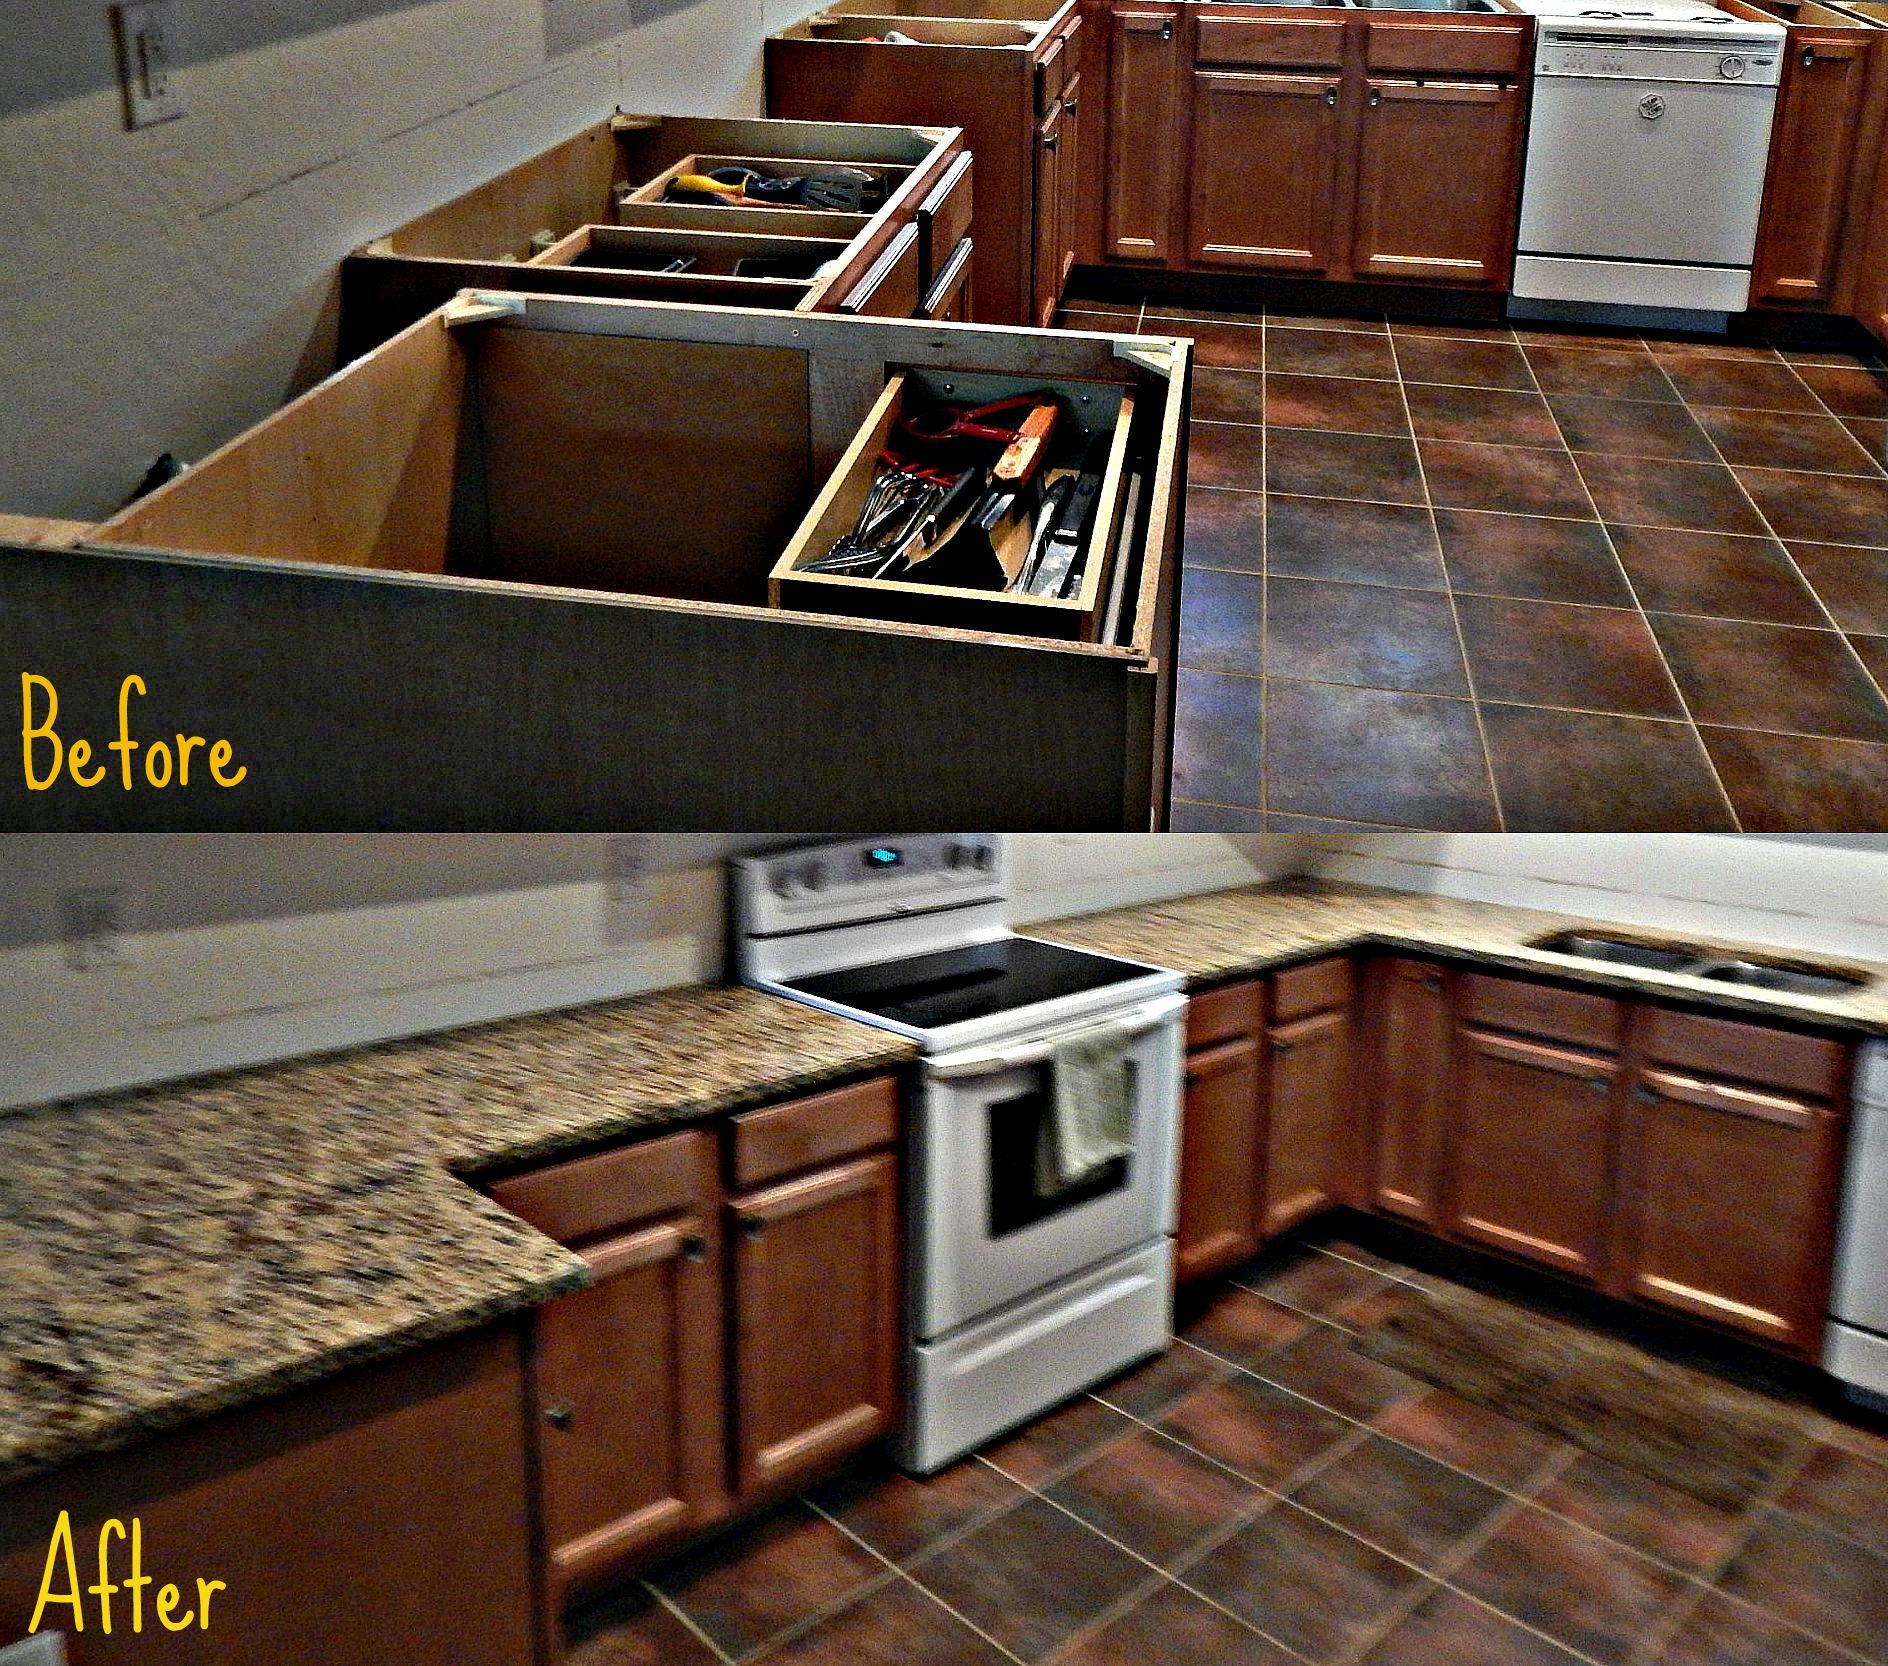 St Cecelia Granite Countertop Remodel With Flat Polish Edge. Call Now For  Your Free Estimate